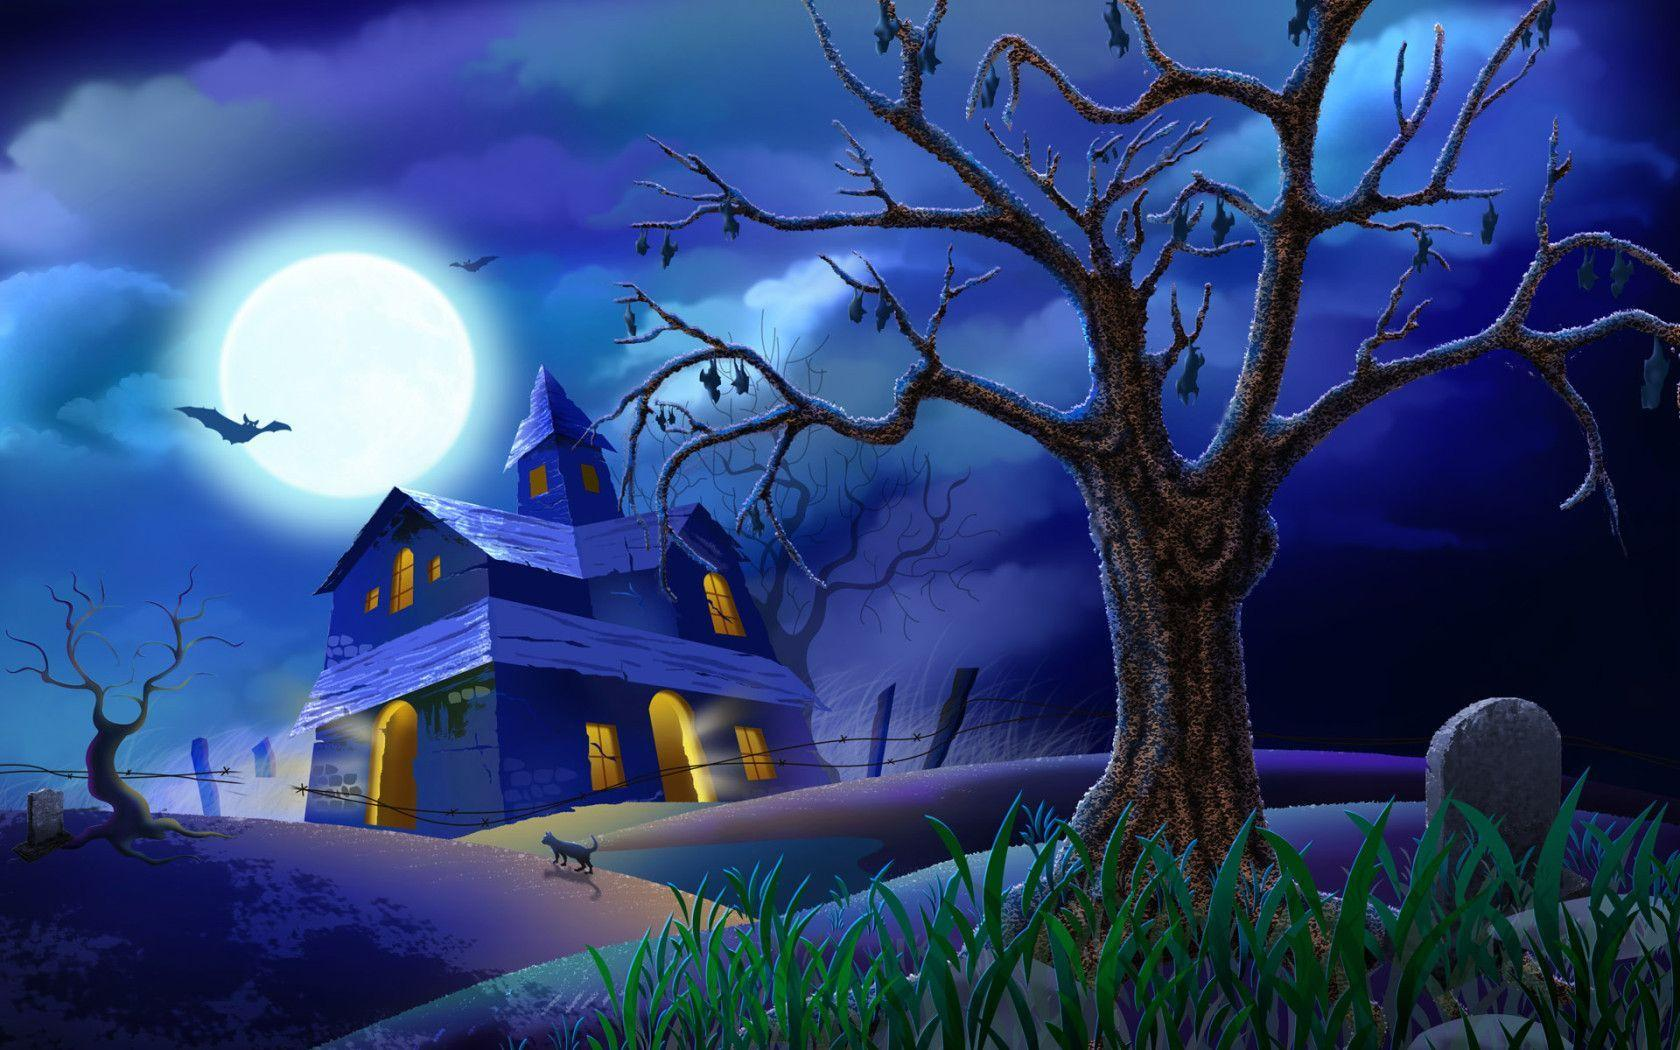 Halloween wallpapers screensavers wallpaper cave - Scary halloween screensavers animated ...